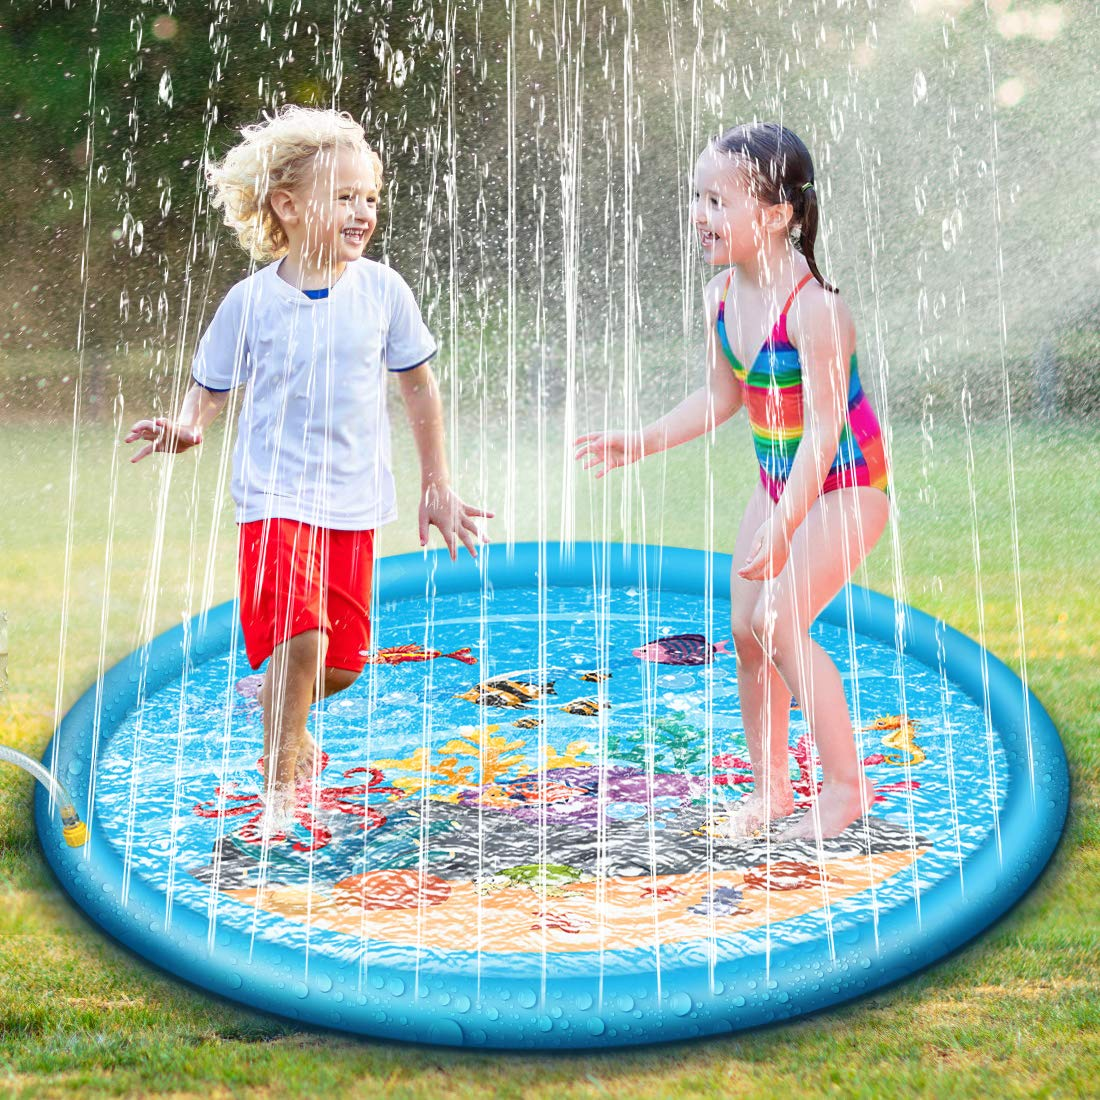 Jomst Sprinkle & Splash Play Mat Inflatable Outdoor Party Sprinkler Splash Pad Toddler Water Toys Fun for Children 2 3 4 5 6 Years Old Boys and Girls (Blue, 68'') by Jomst